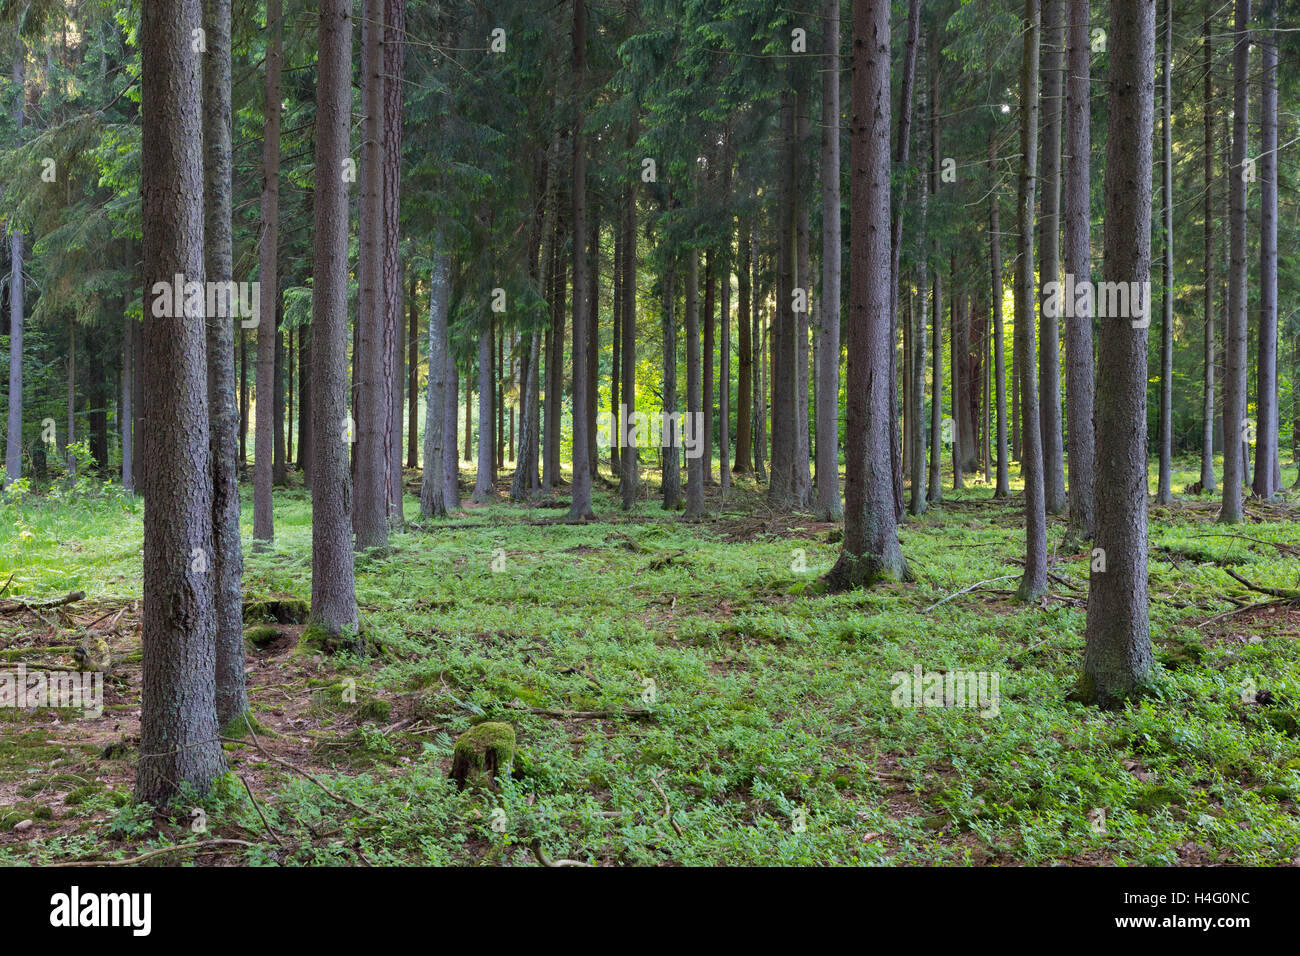 Rich coniferous forest in sunset with spruce and pine trees,Bialowieza Forest,Poland,Europe - Stock Image